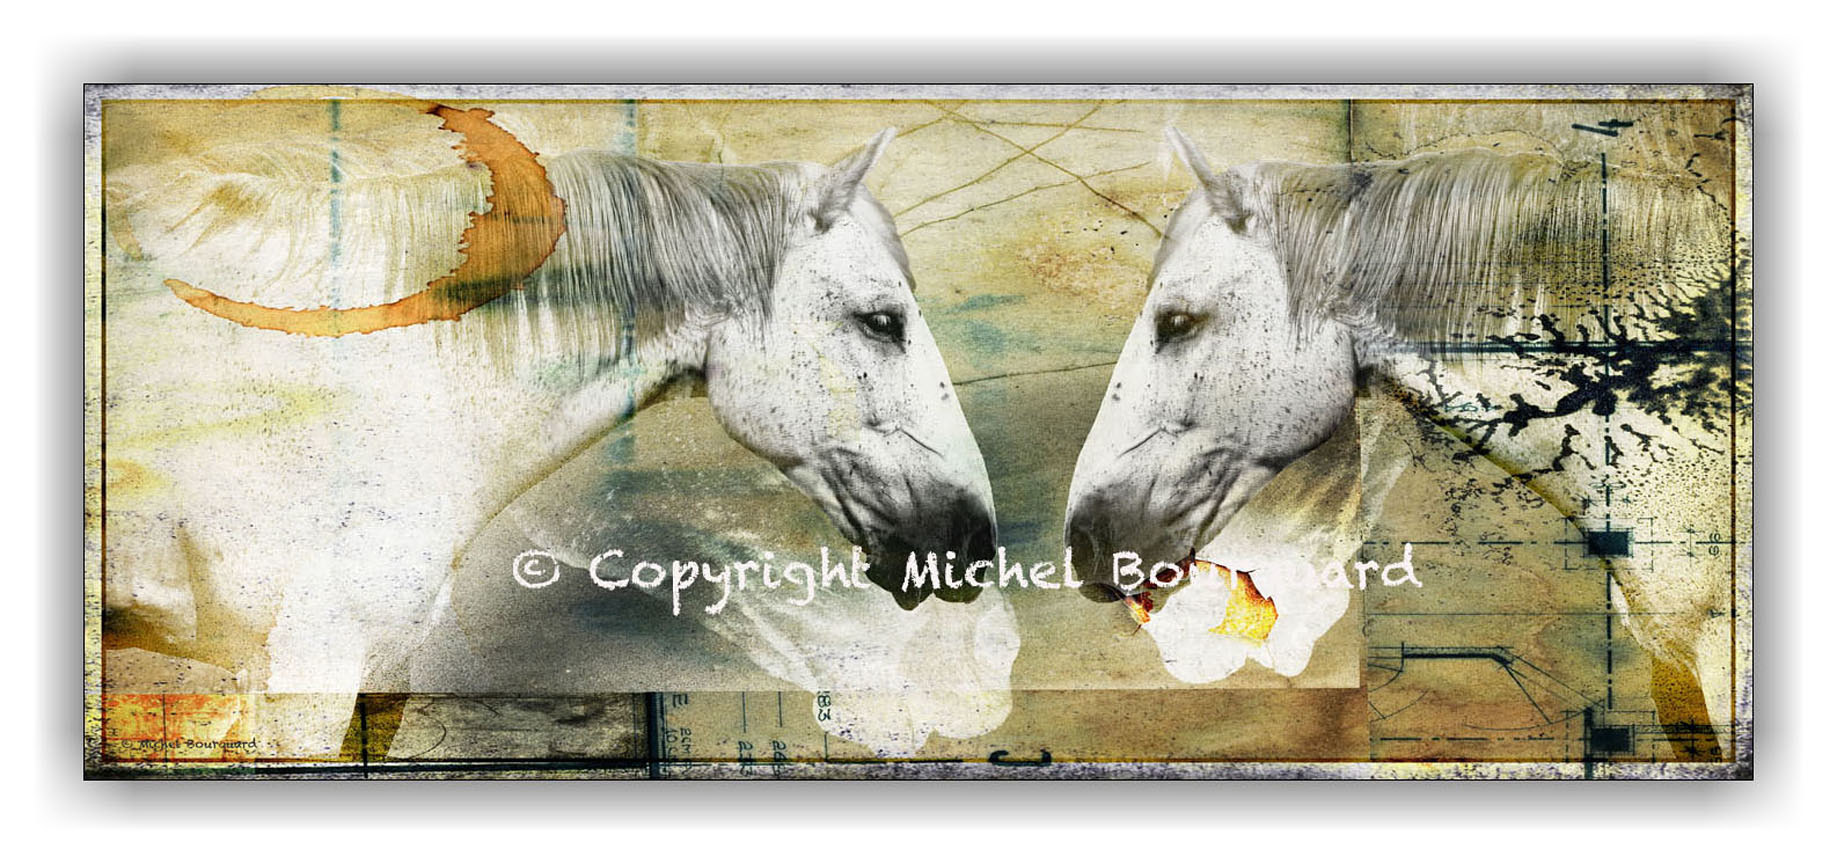 2 Two White Horses_ in a field of dream by Michel Bourquard